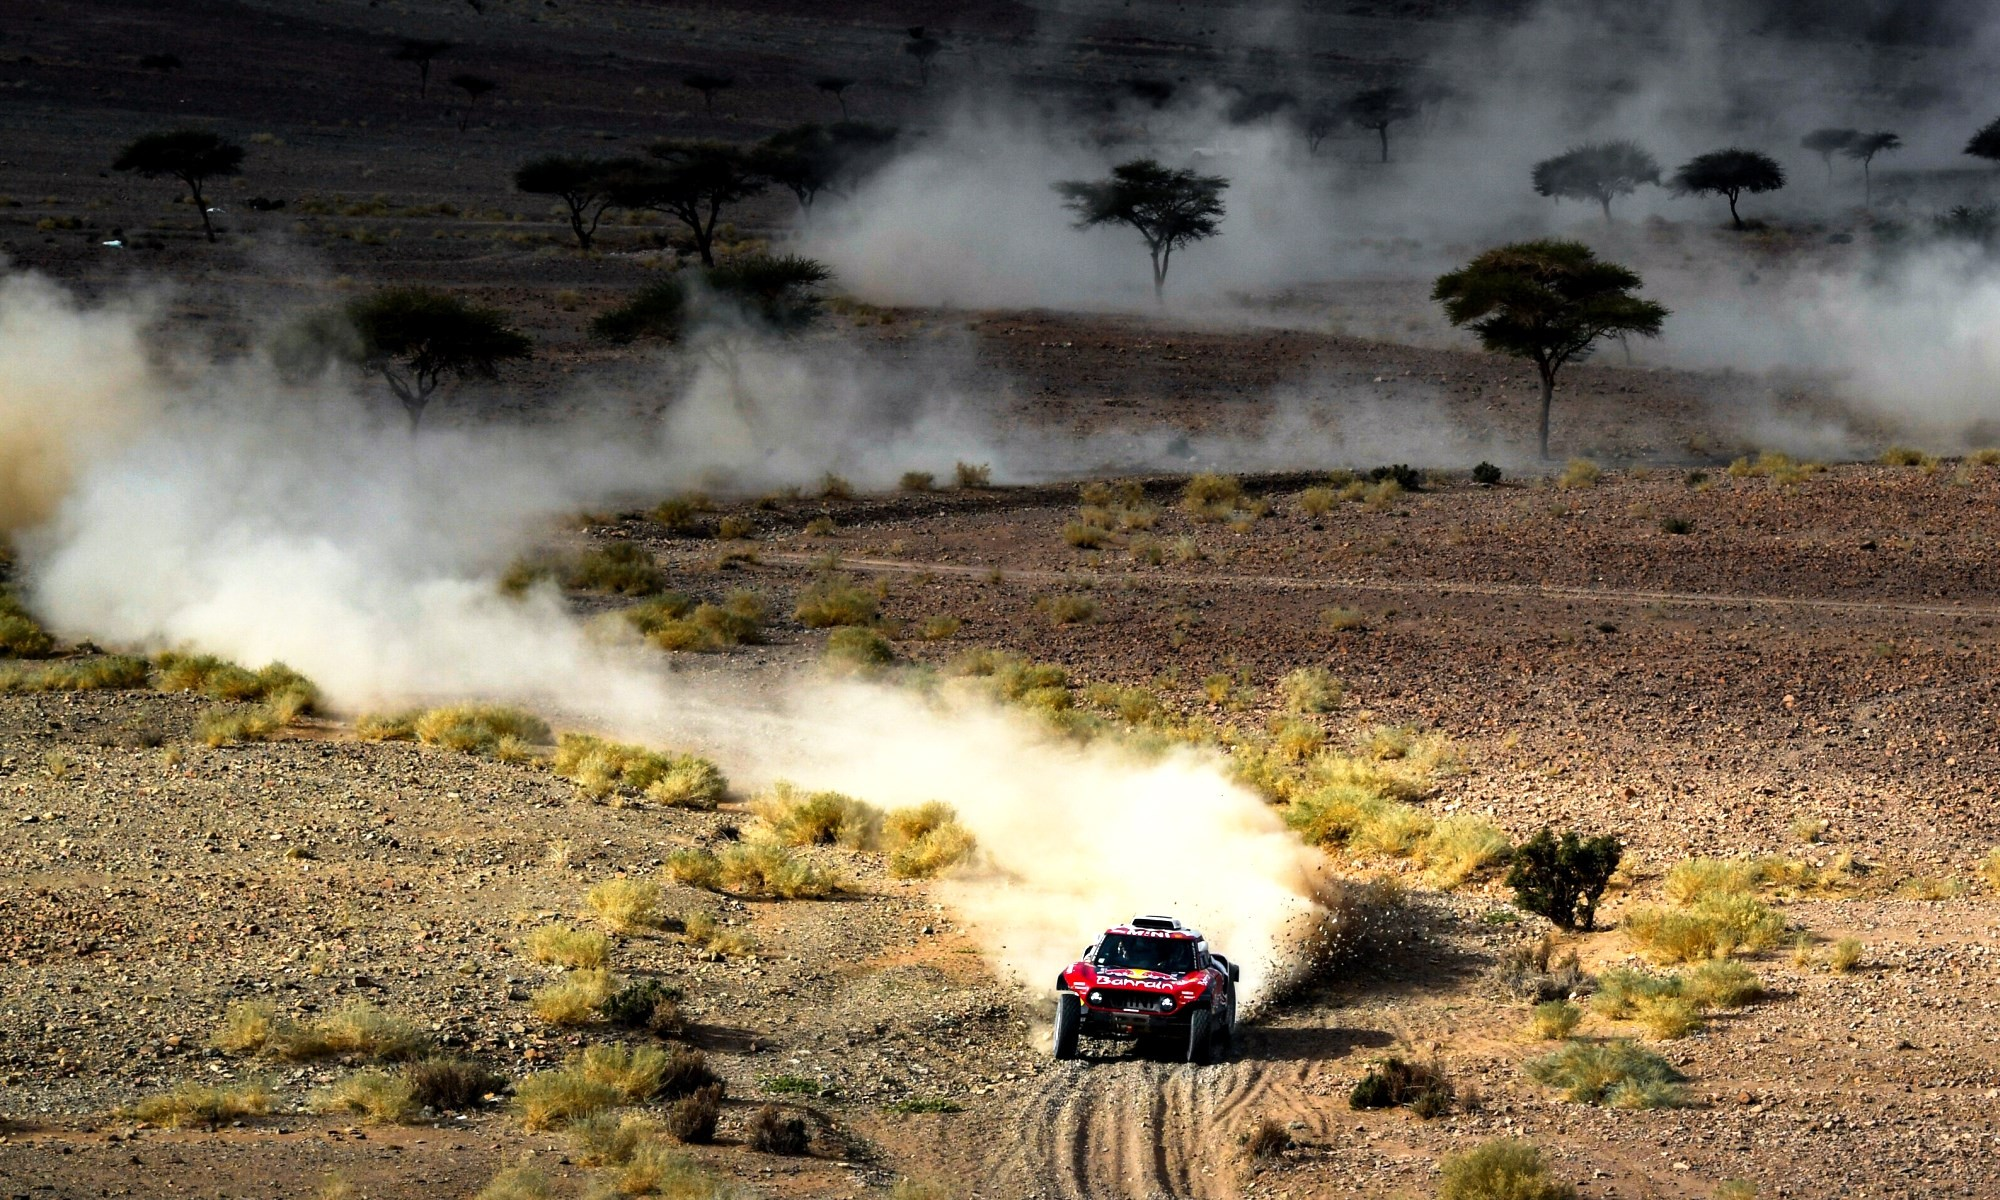 Carlos Sainz grabbed the lead of 2020 Dakar Stage 5 at the halfway point and held on to win.